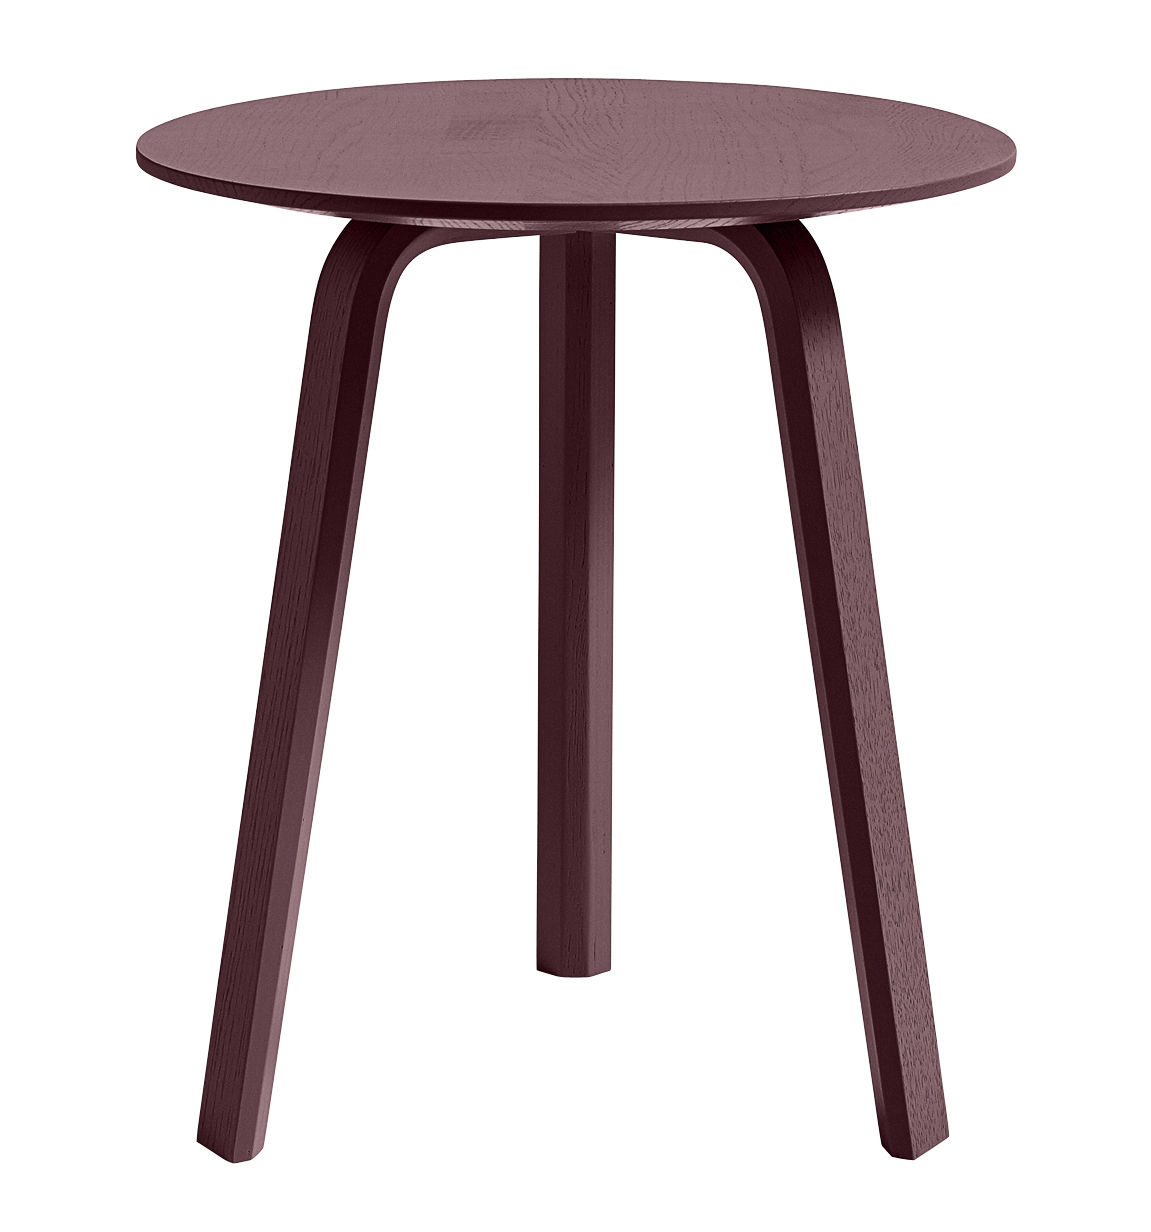 Furniture - Coffee Tables - Bella Coffee table - / Ø 45 x H 49 cm by Hay - Burgundy - Tinted oak